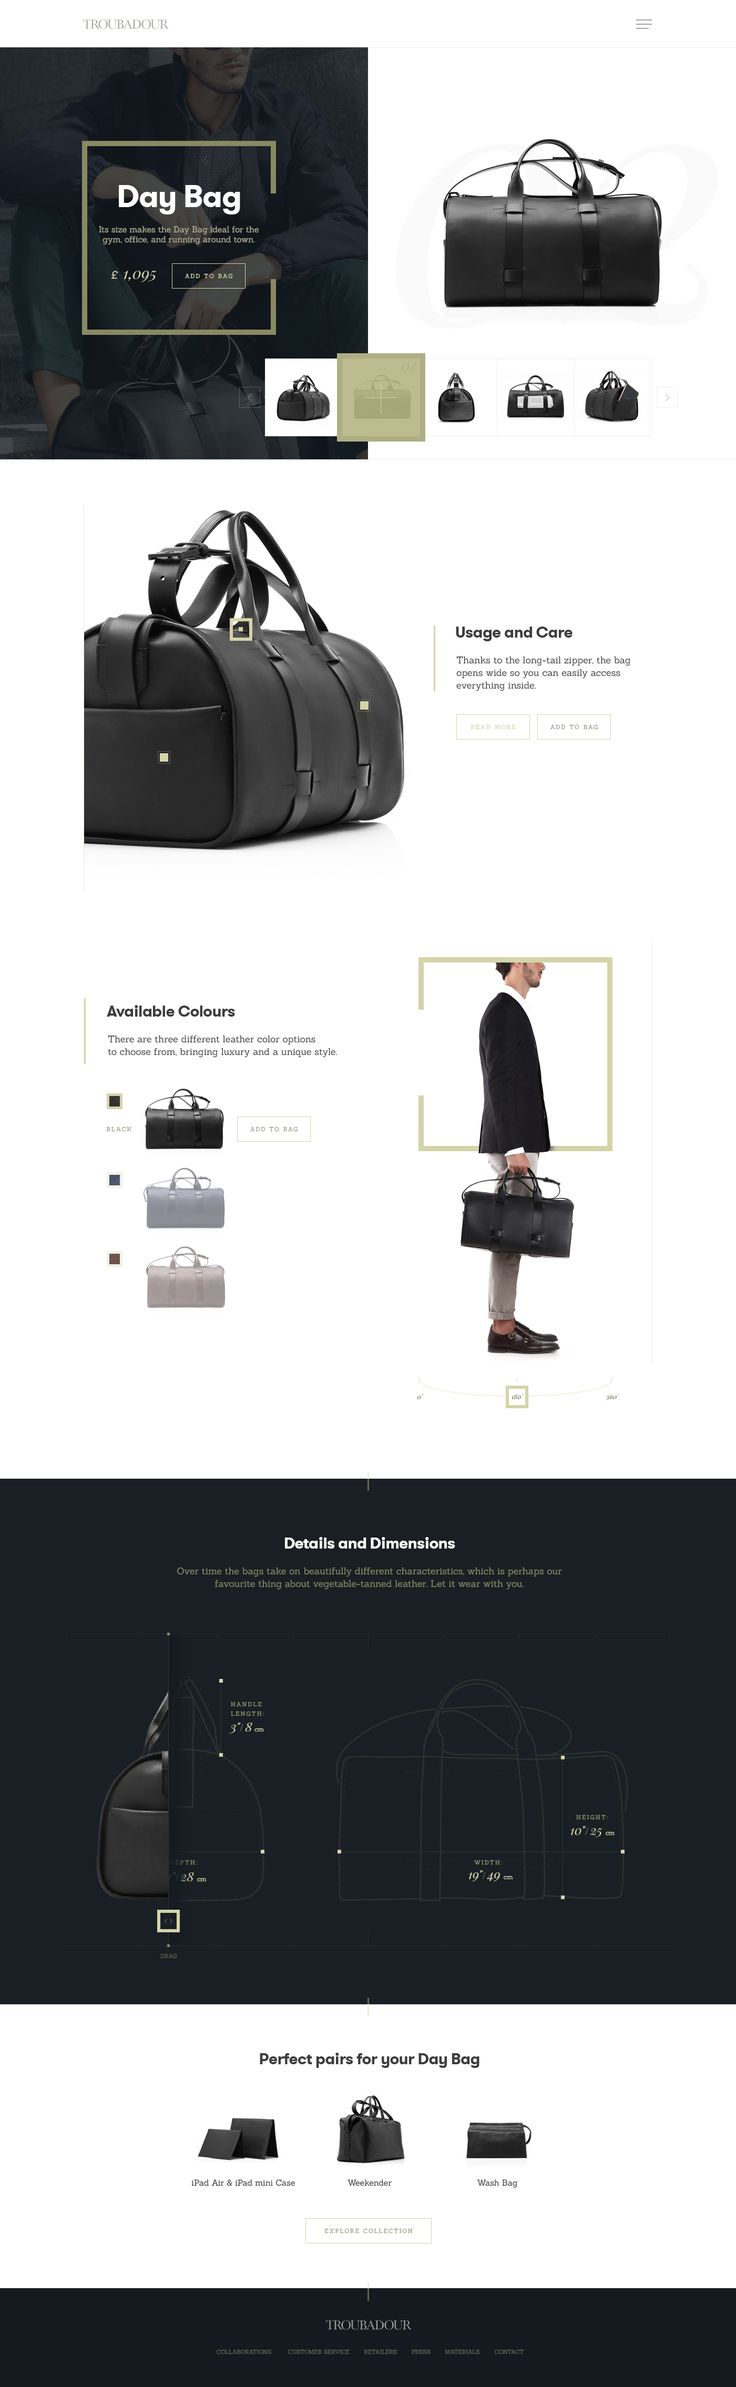 Troubadour Goods - product page by Kreativa Studio